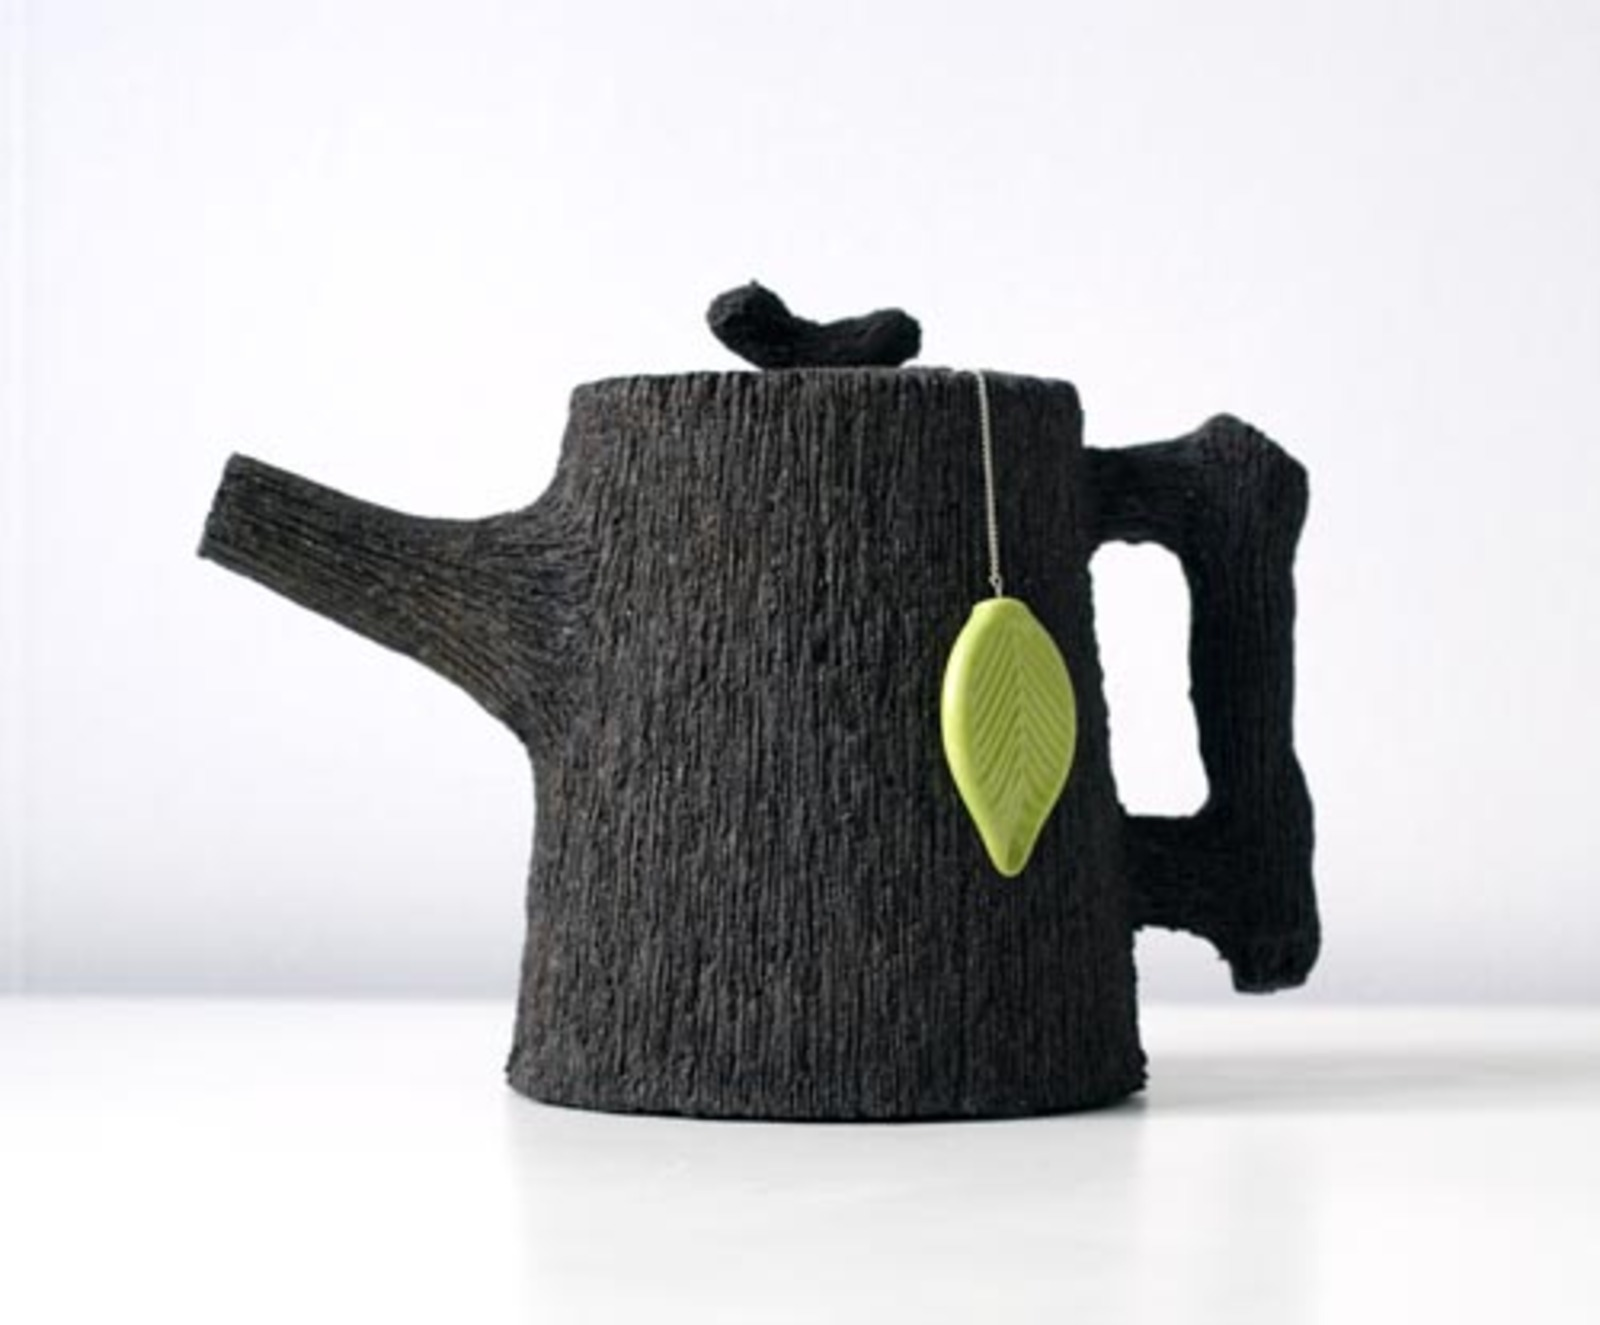 Looking For Teapots Quotwood You Like A Cup Of Tea Quot Pot Cool Hunting